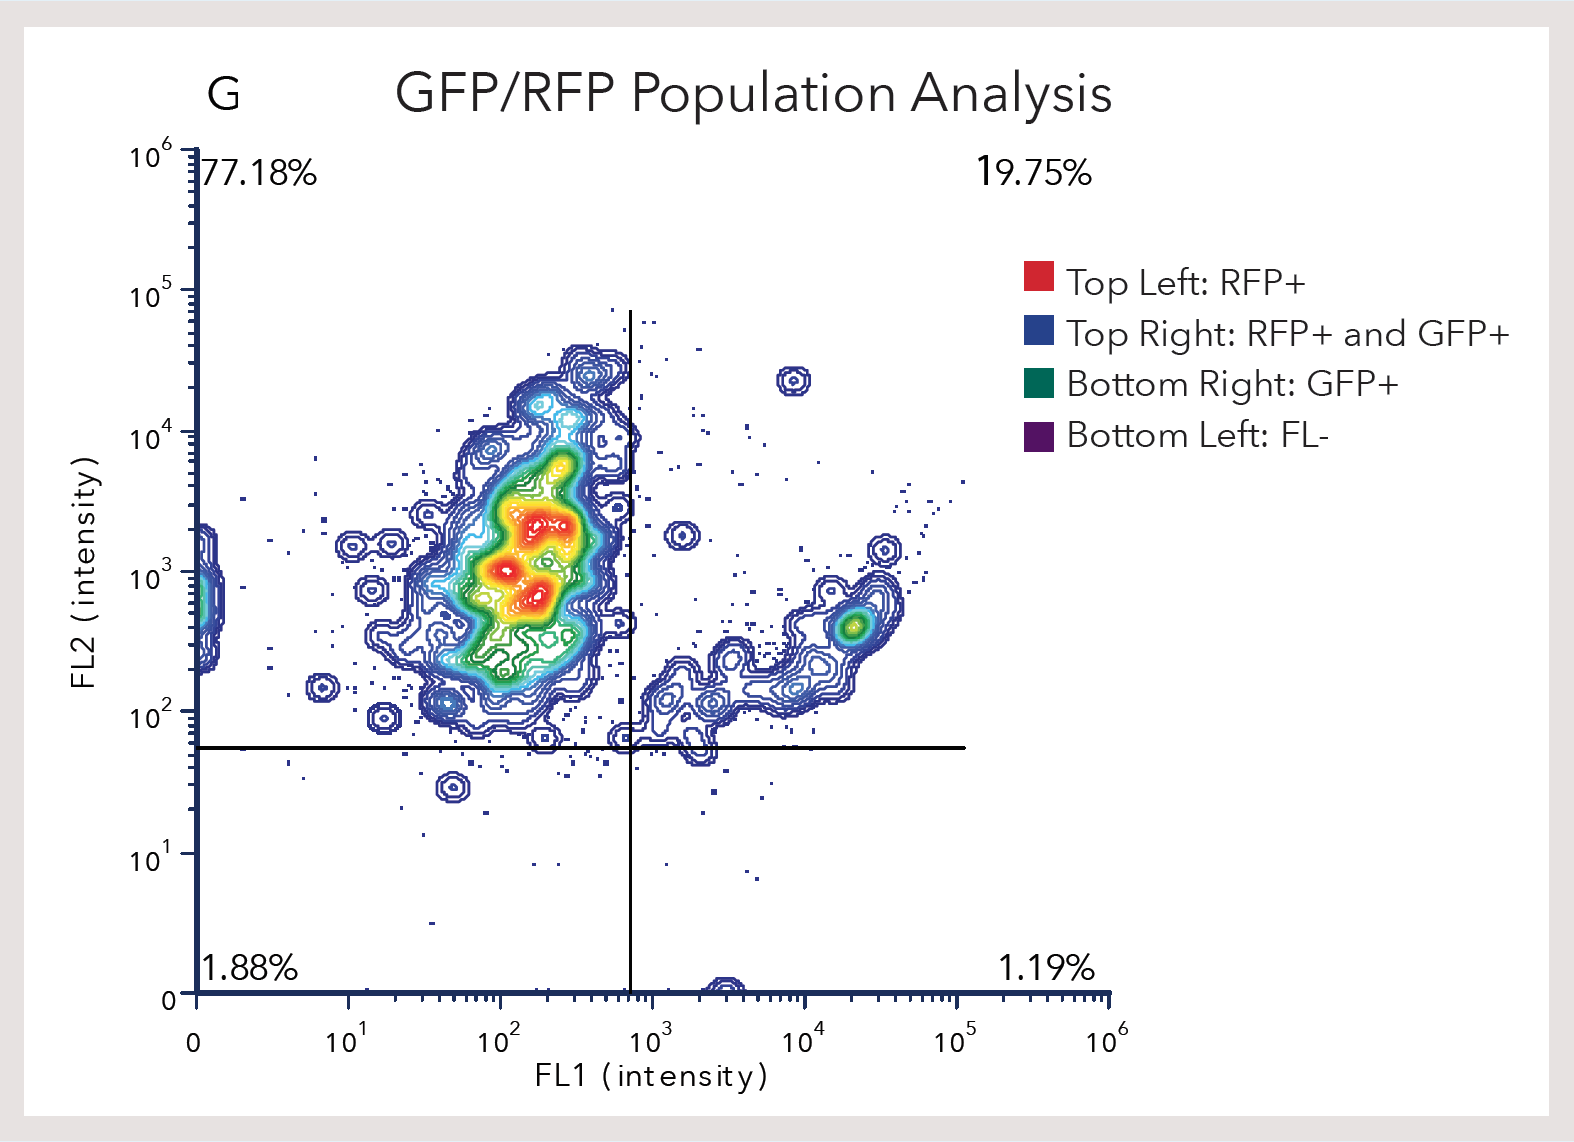 GFP/RFP Population Analysis